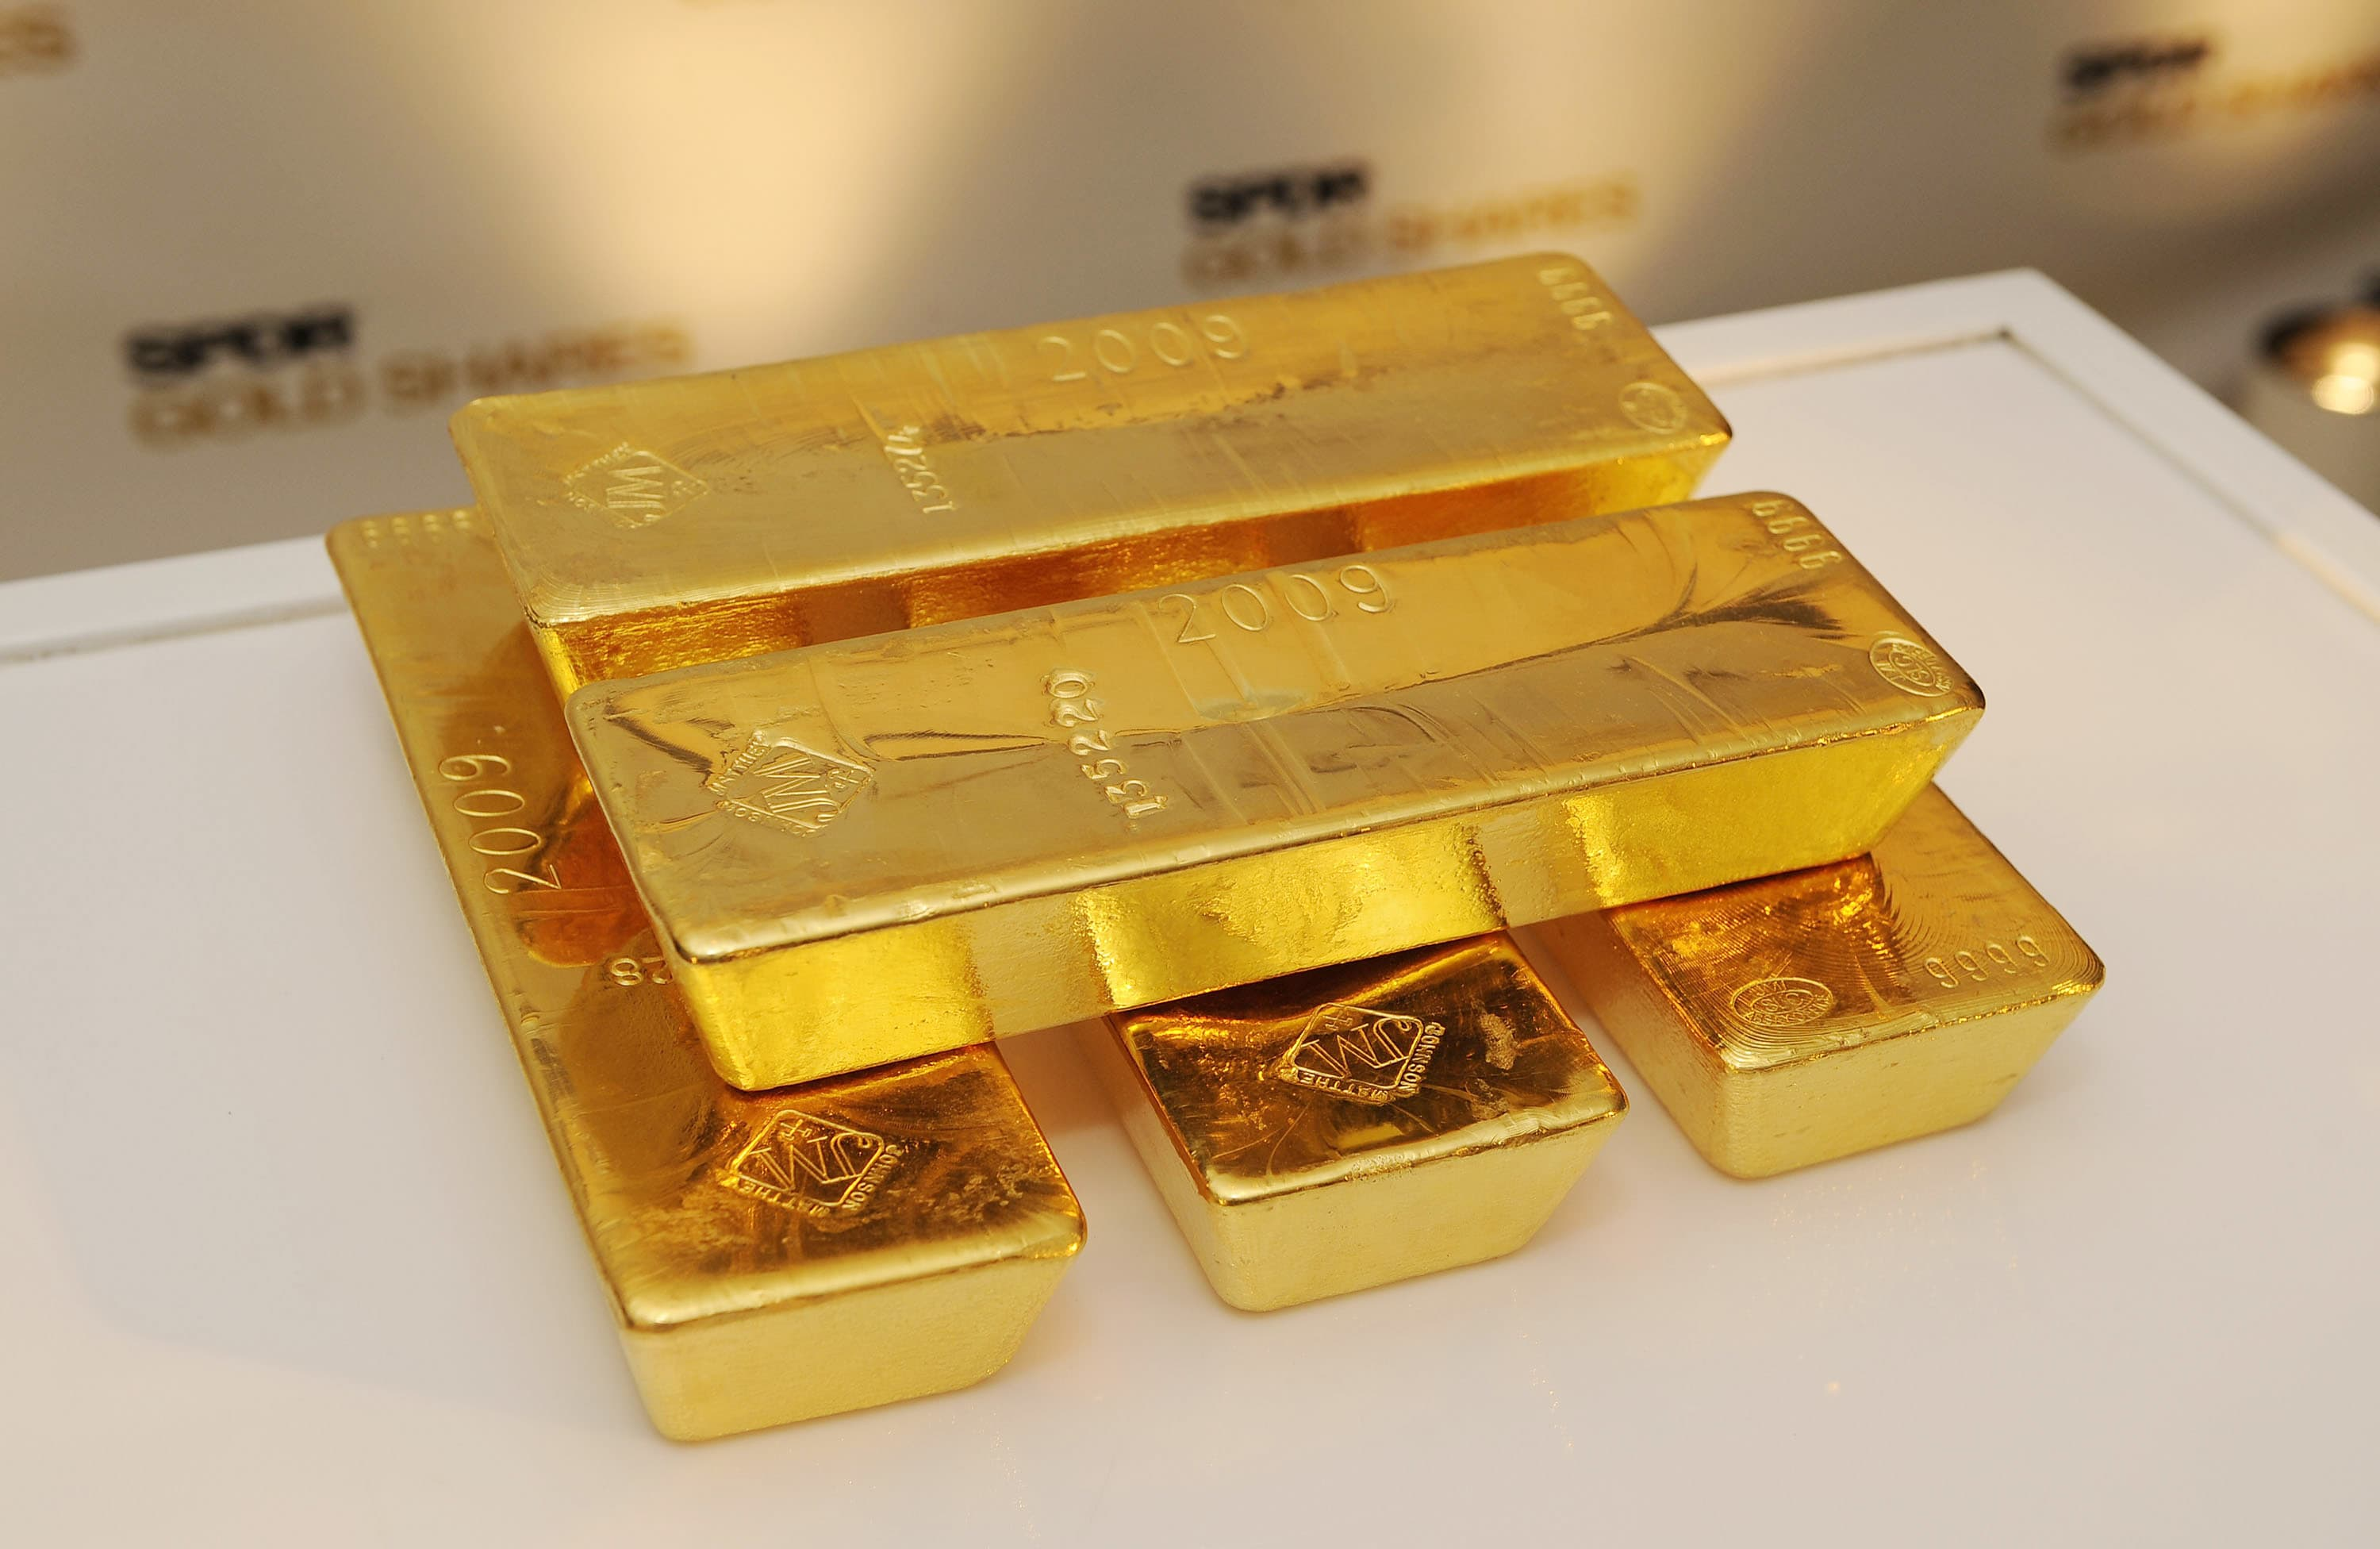 Gold eases after surprise US CPI jump, holds above $1,400